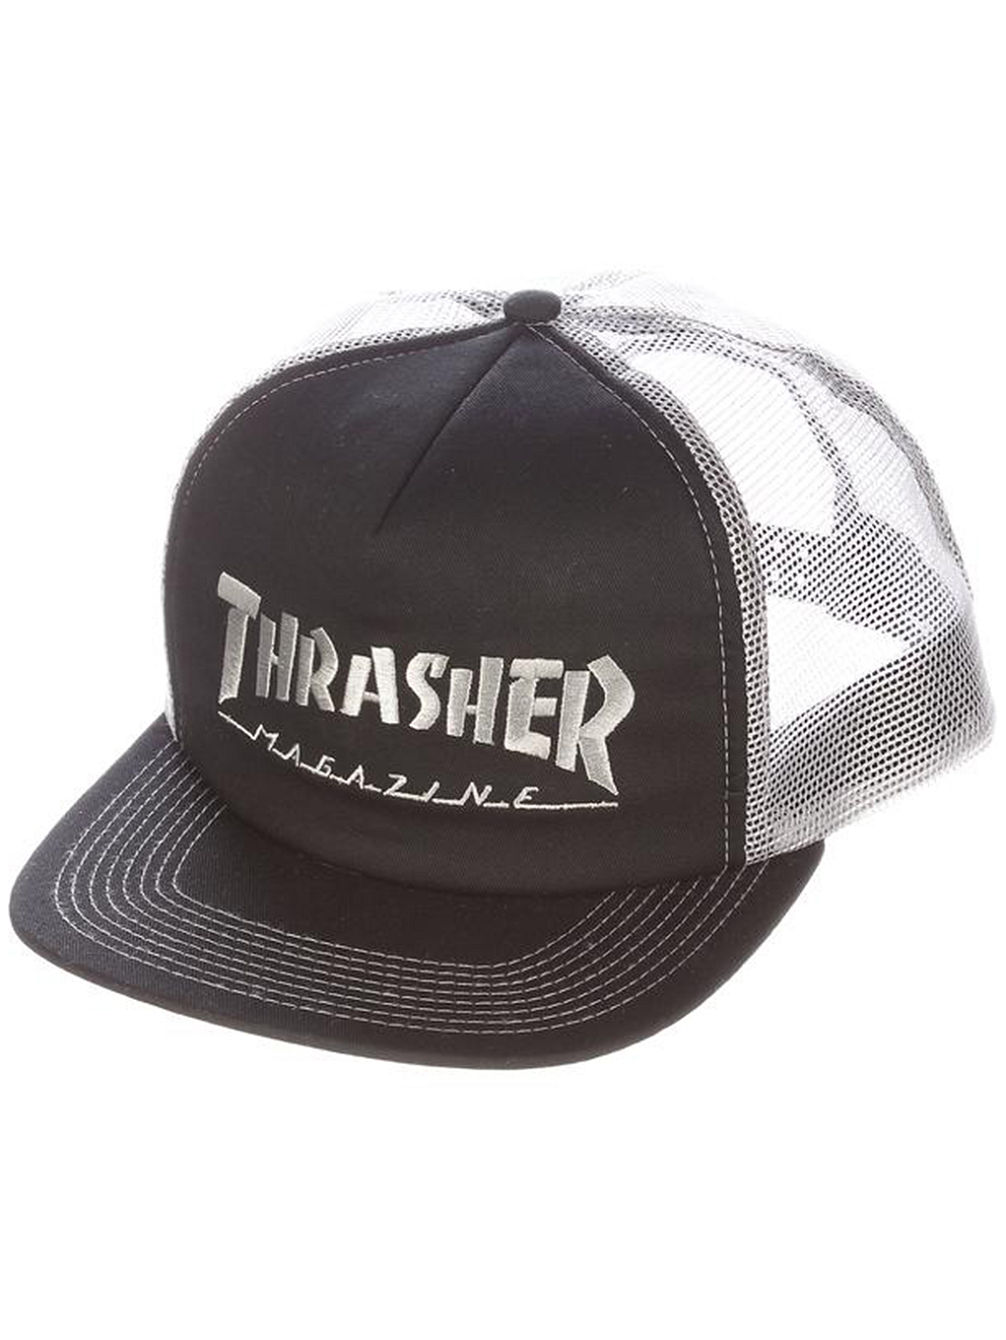 2d40cef5904 Buy Thrasher Print Mag Logo Cap online at Blue Tomato